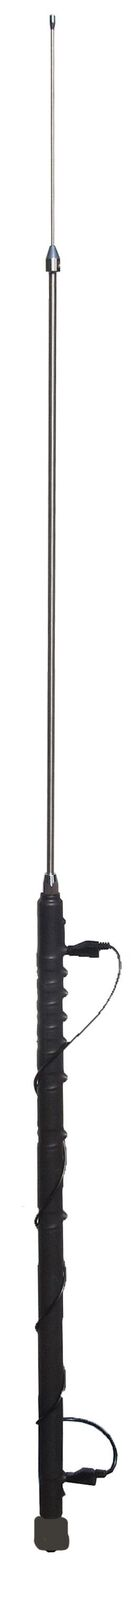 """MFJ-1412 Dual Band 2M//70CM Mobile Antenna 40/"""" Tall with UHF Connector"""